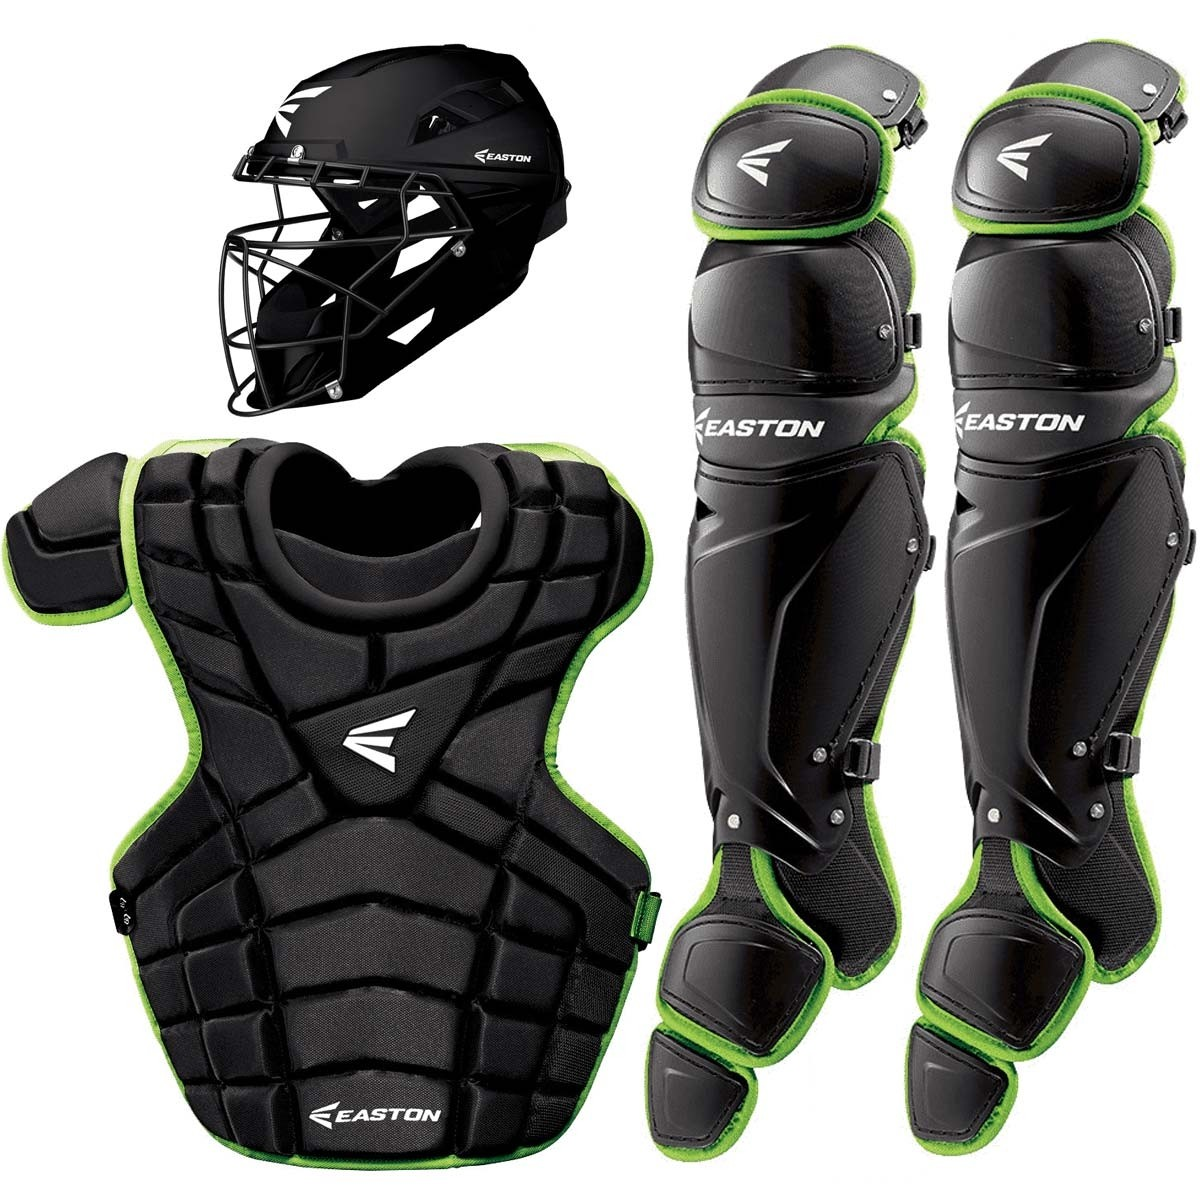 3da19dfbaa8 Easton M10 Catcher s Gear Set